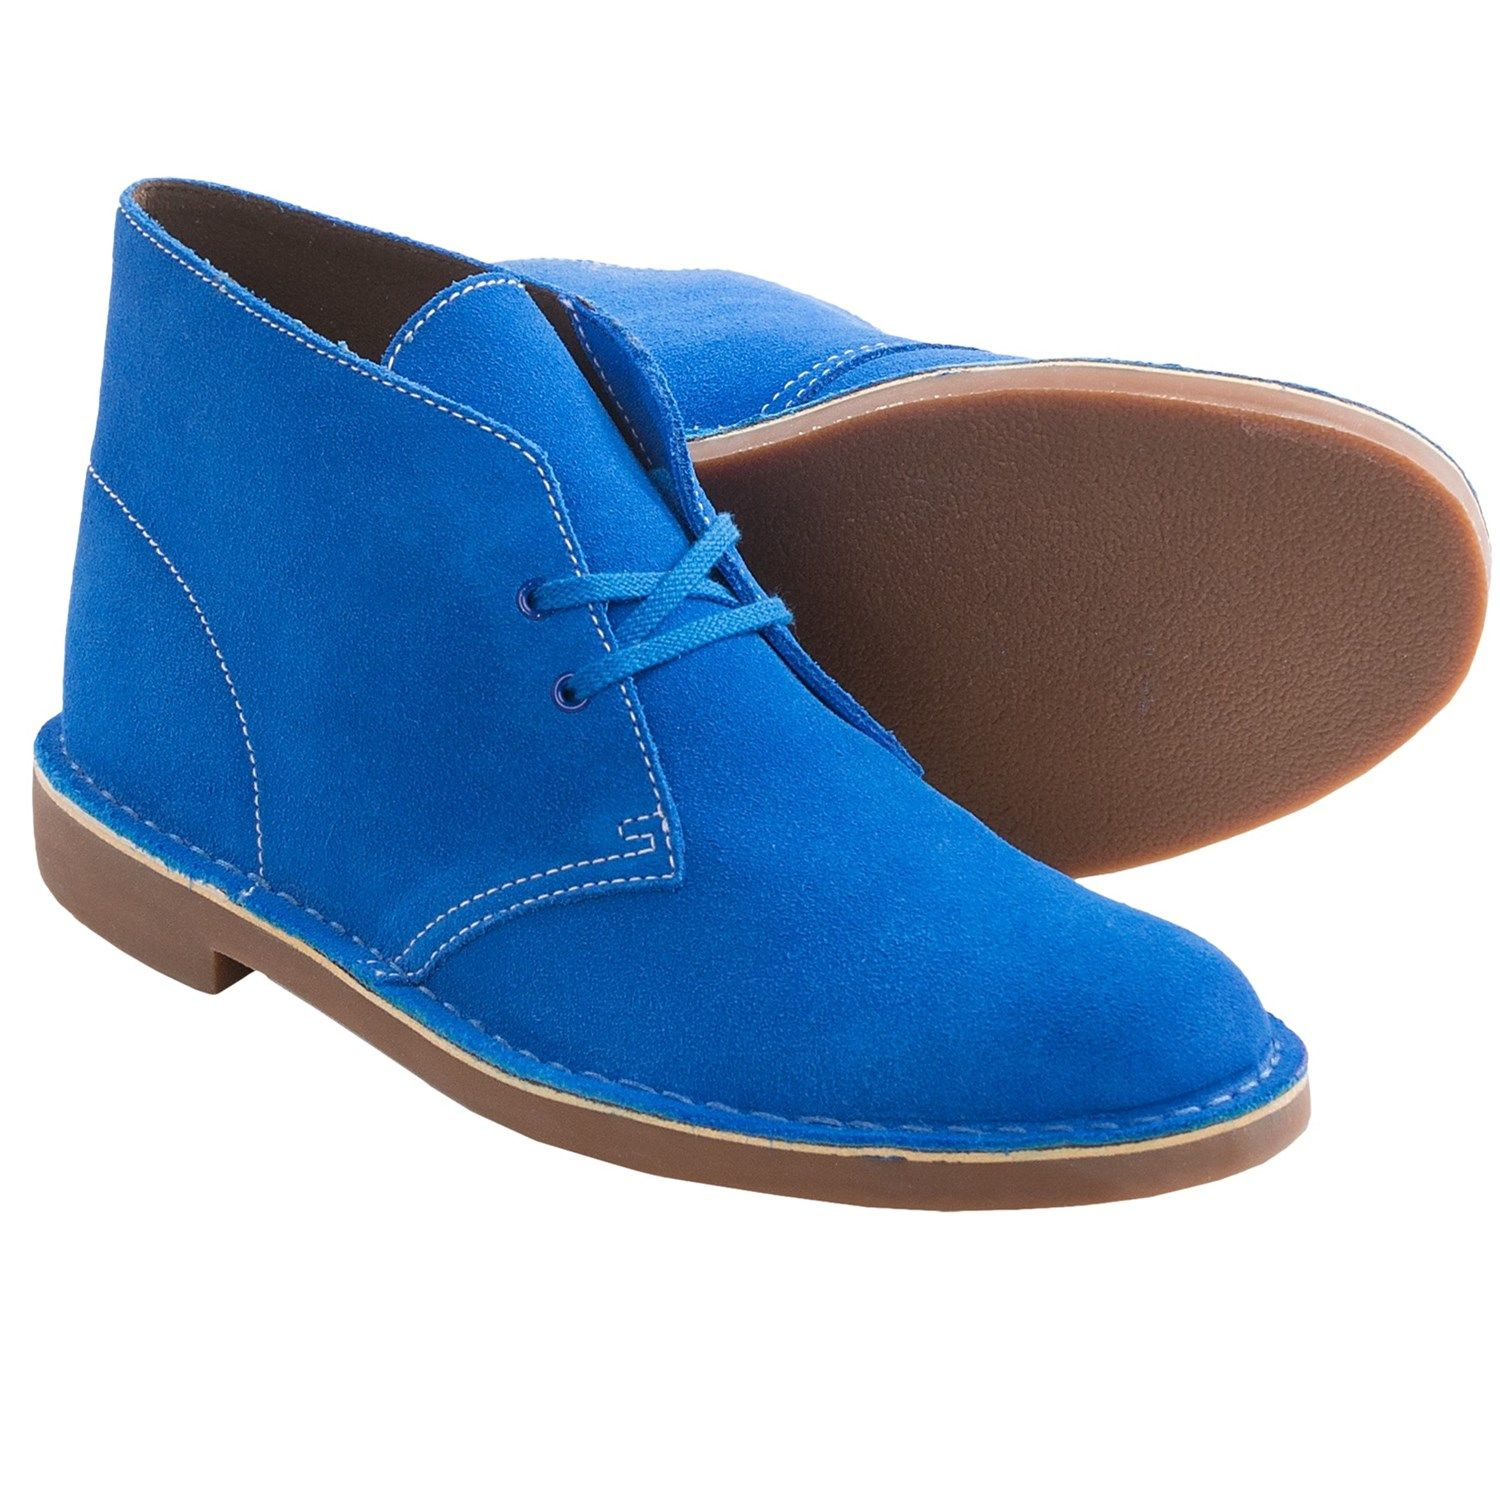 Clarks Bushacre 2 Chukka Boots - Leather (For Men) | 2!, Blue and ...